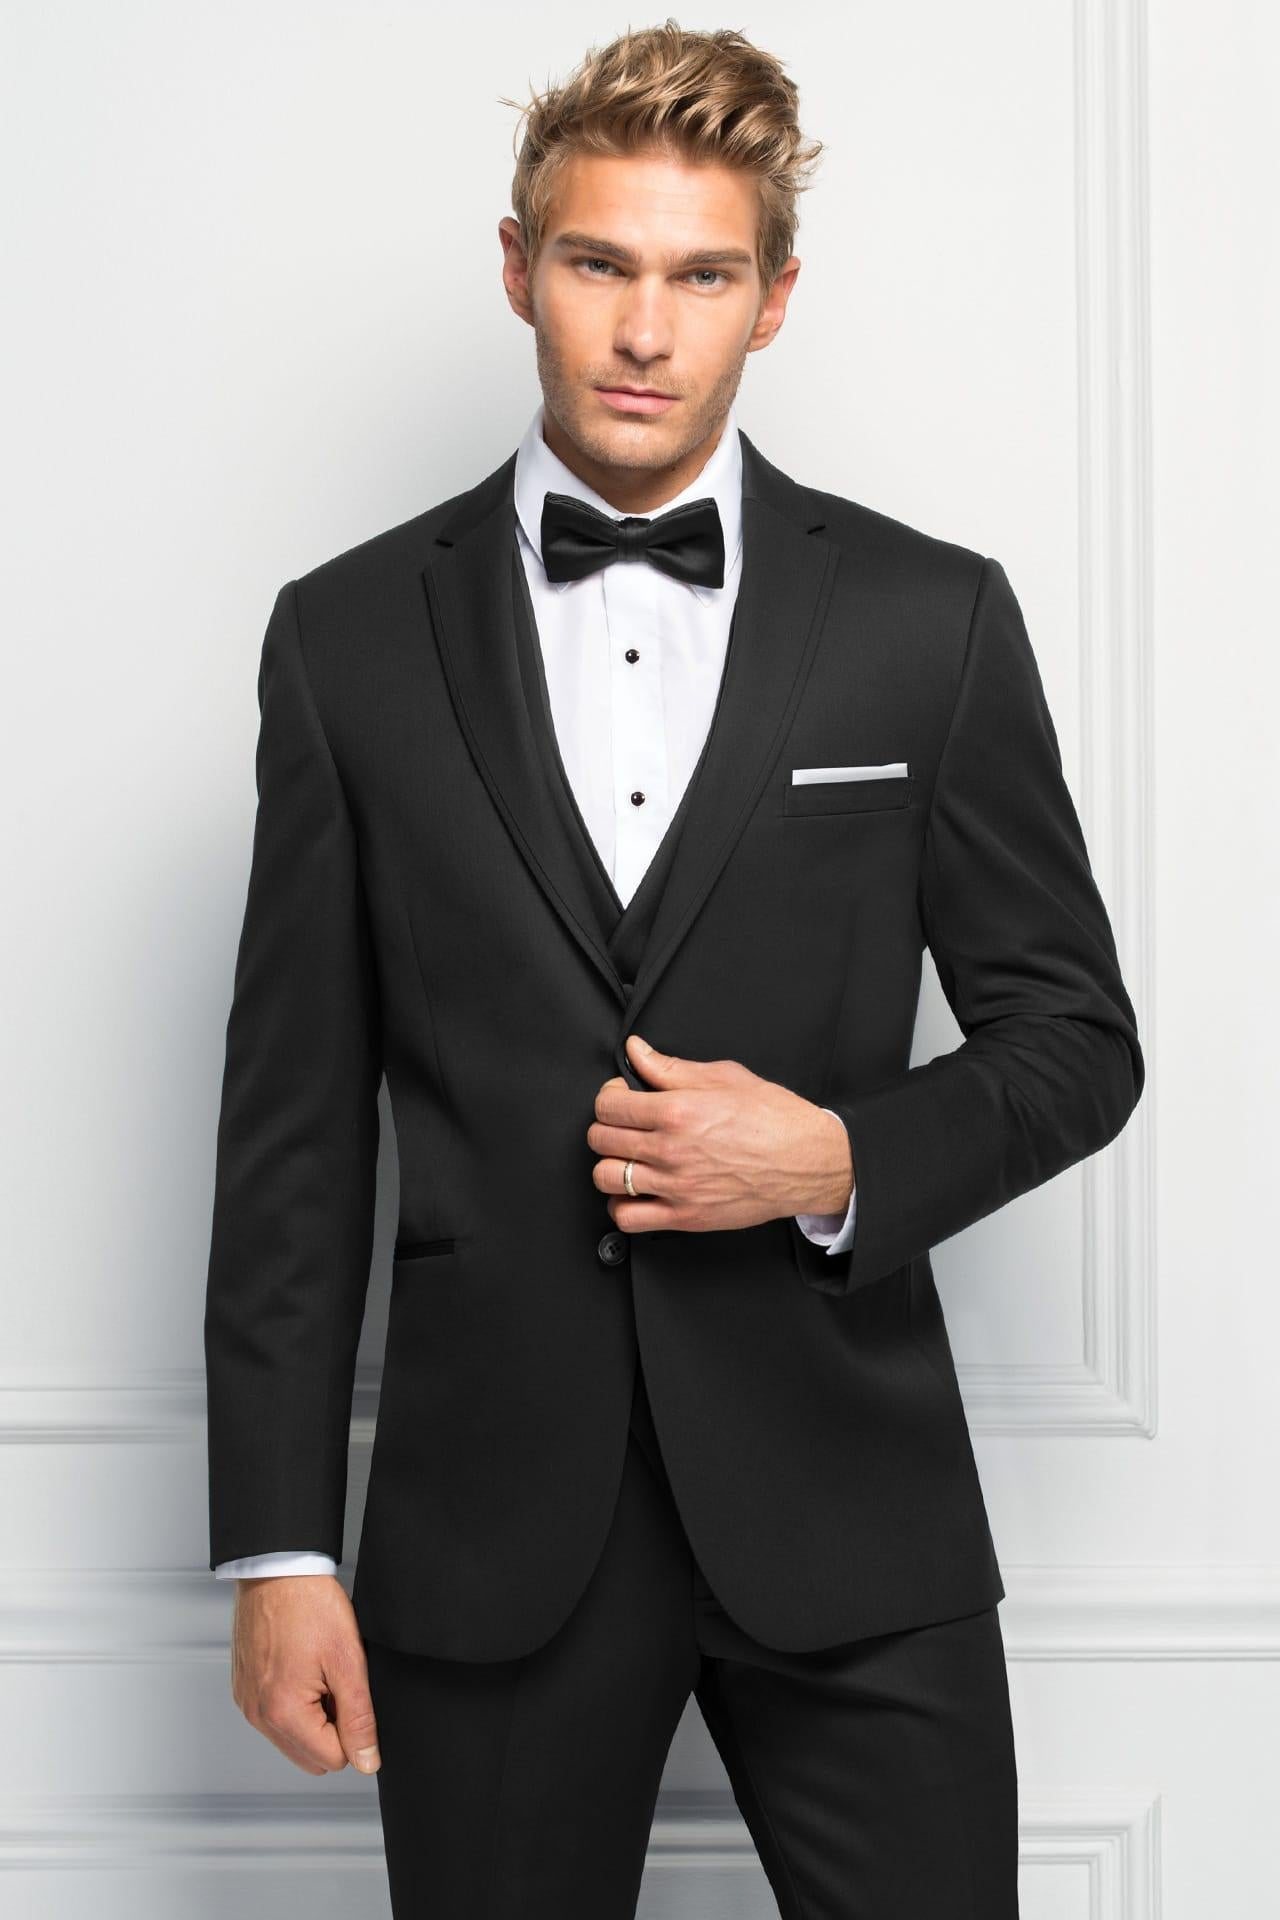 MICHAEL KORS ULTRA SLIM STERLING WEDDING SUIT RENTAL